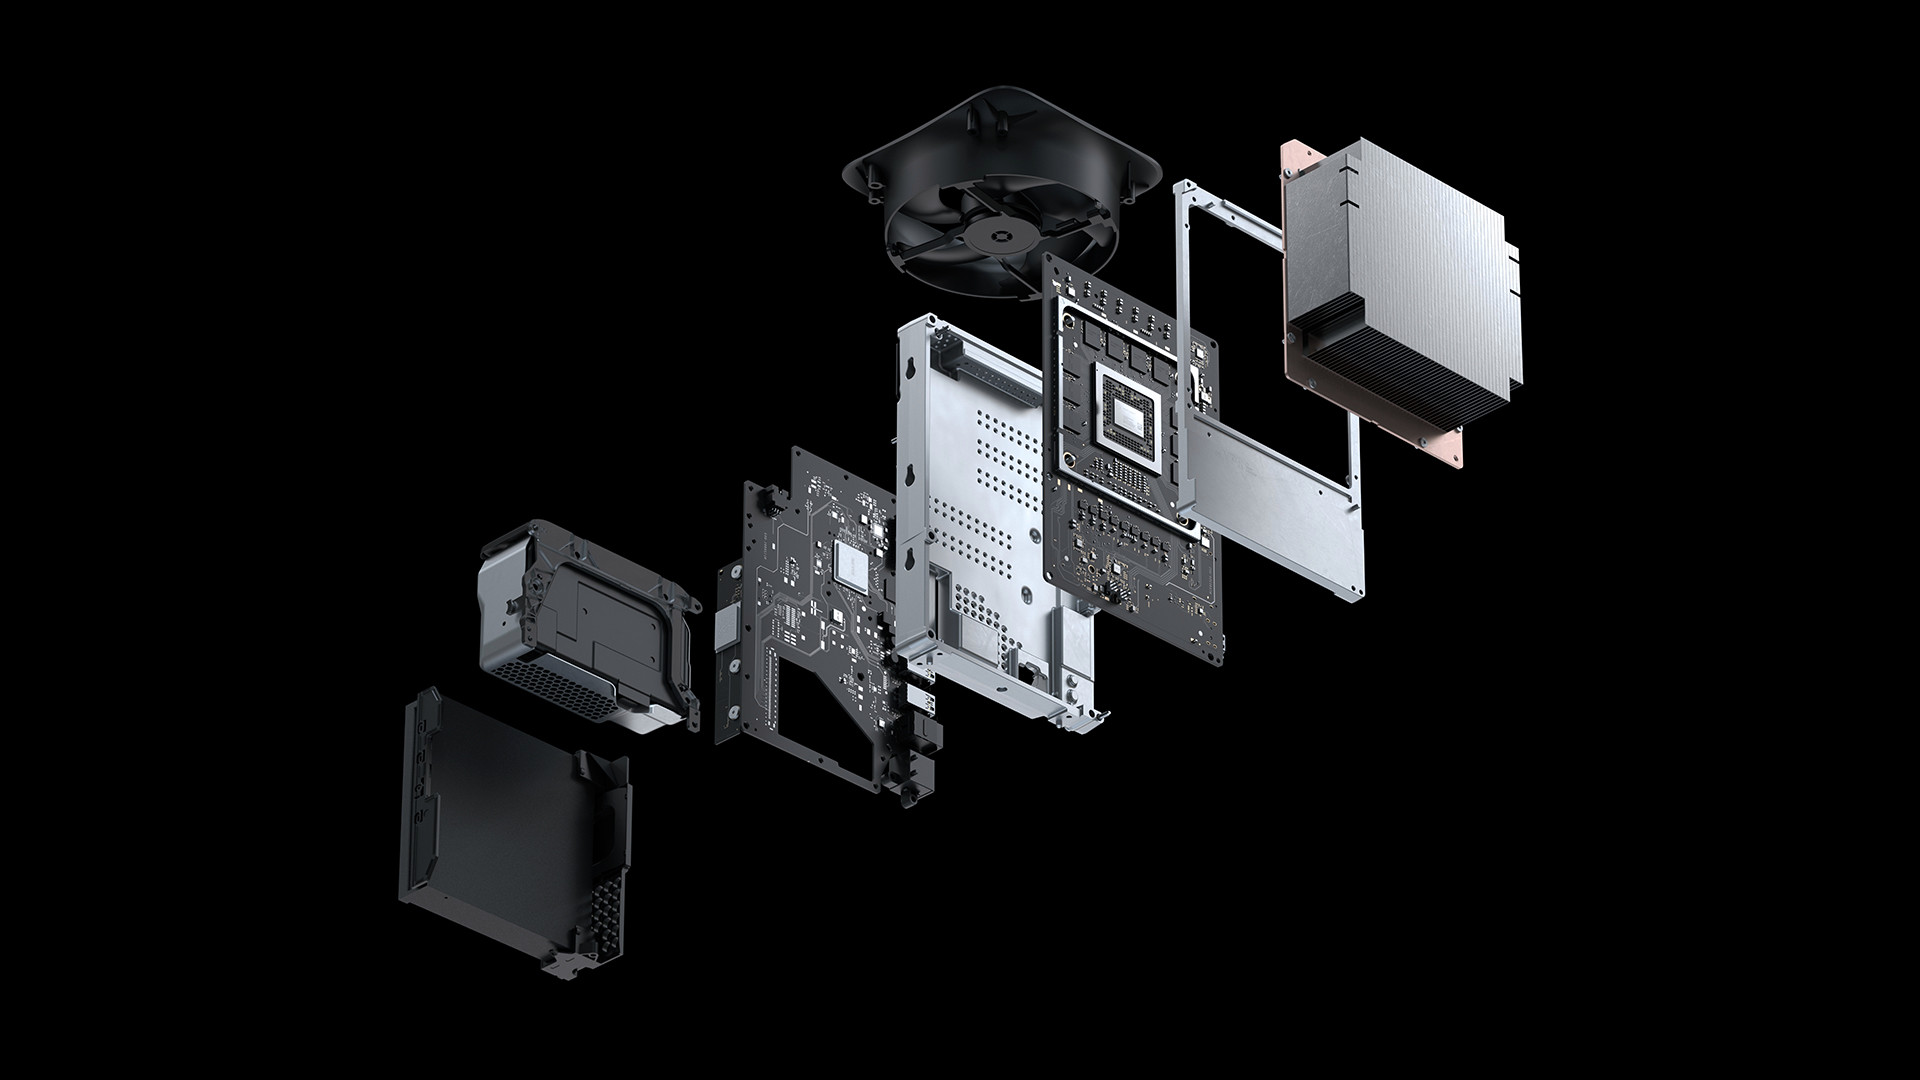 Interview With Phil Spencer: 'I Feel Really Good About How Series X Lines Up. And The SSD Tech Is Quite Impressive'